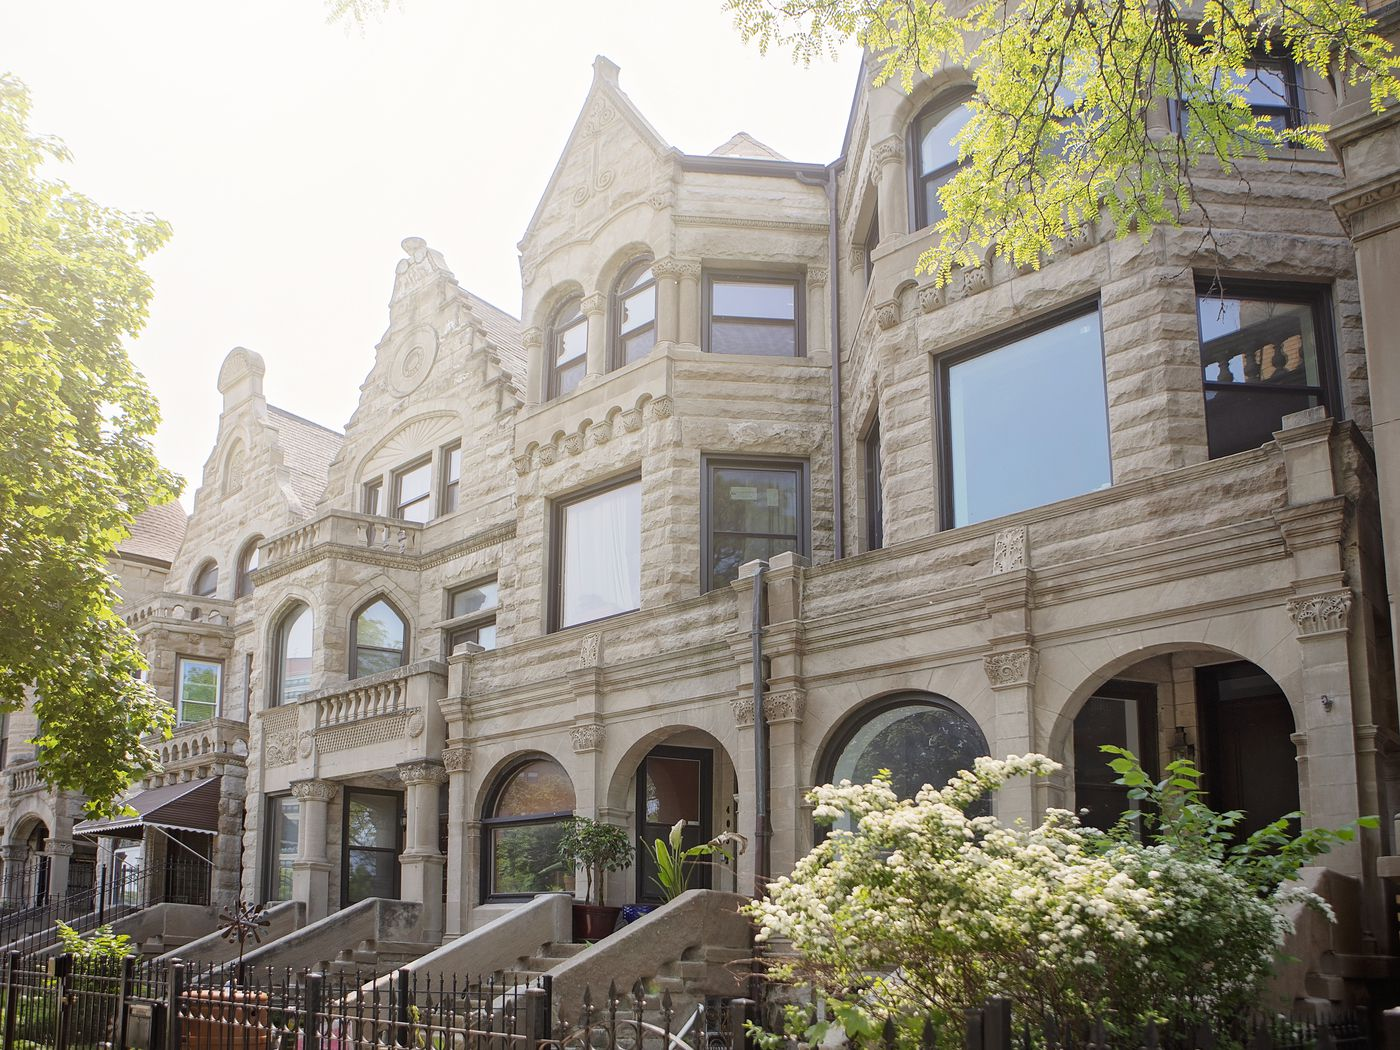 How Chicago's neighborhoods got their names - Curbed Chicago